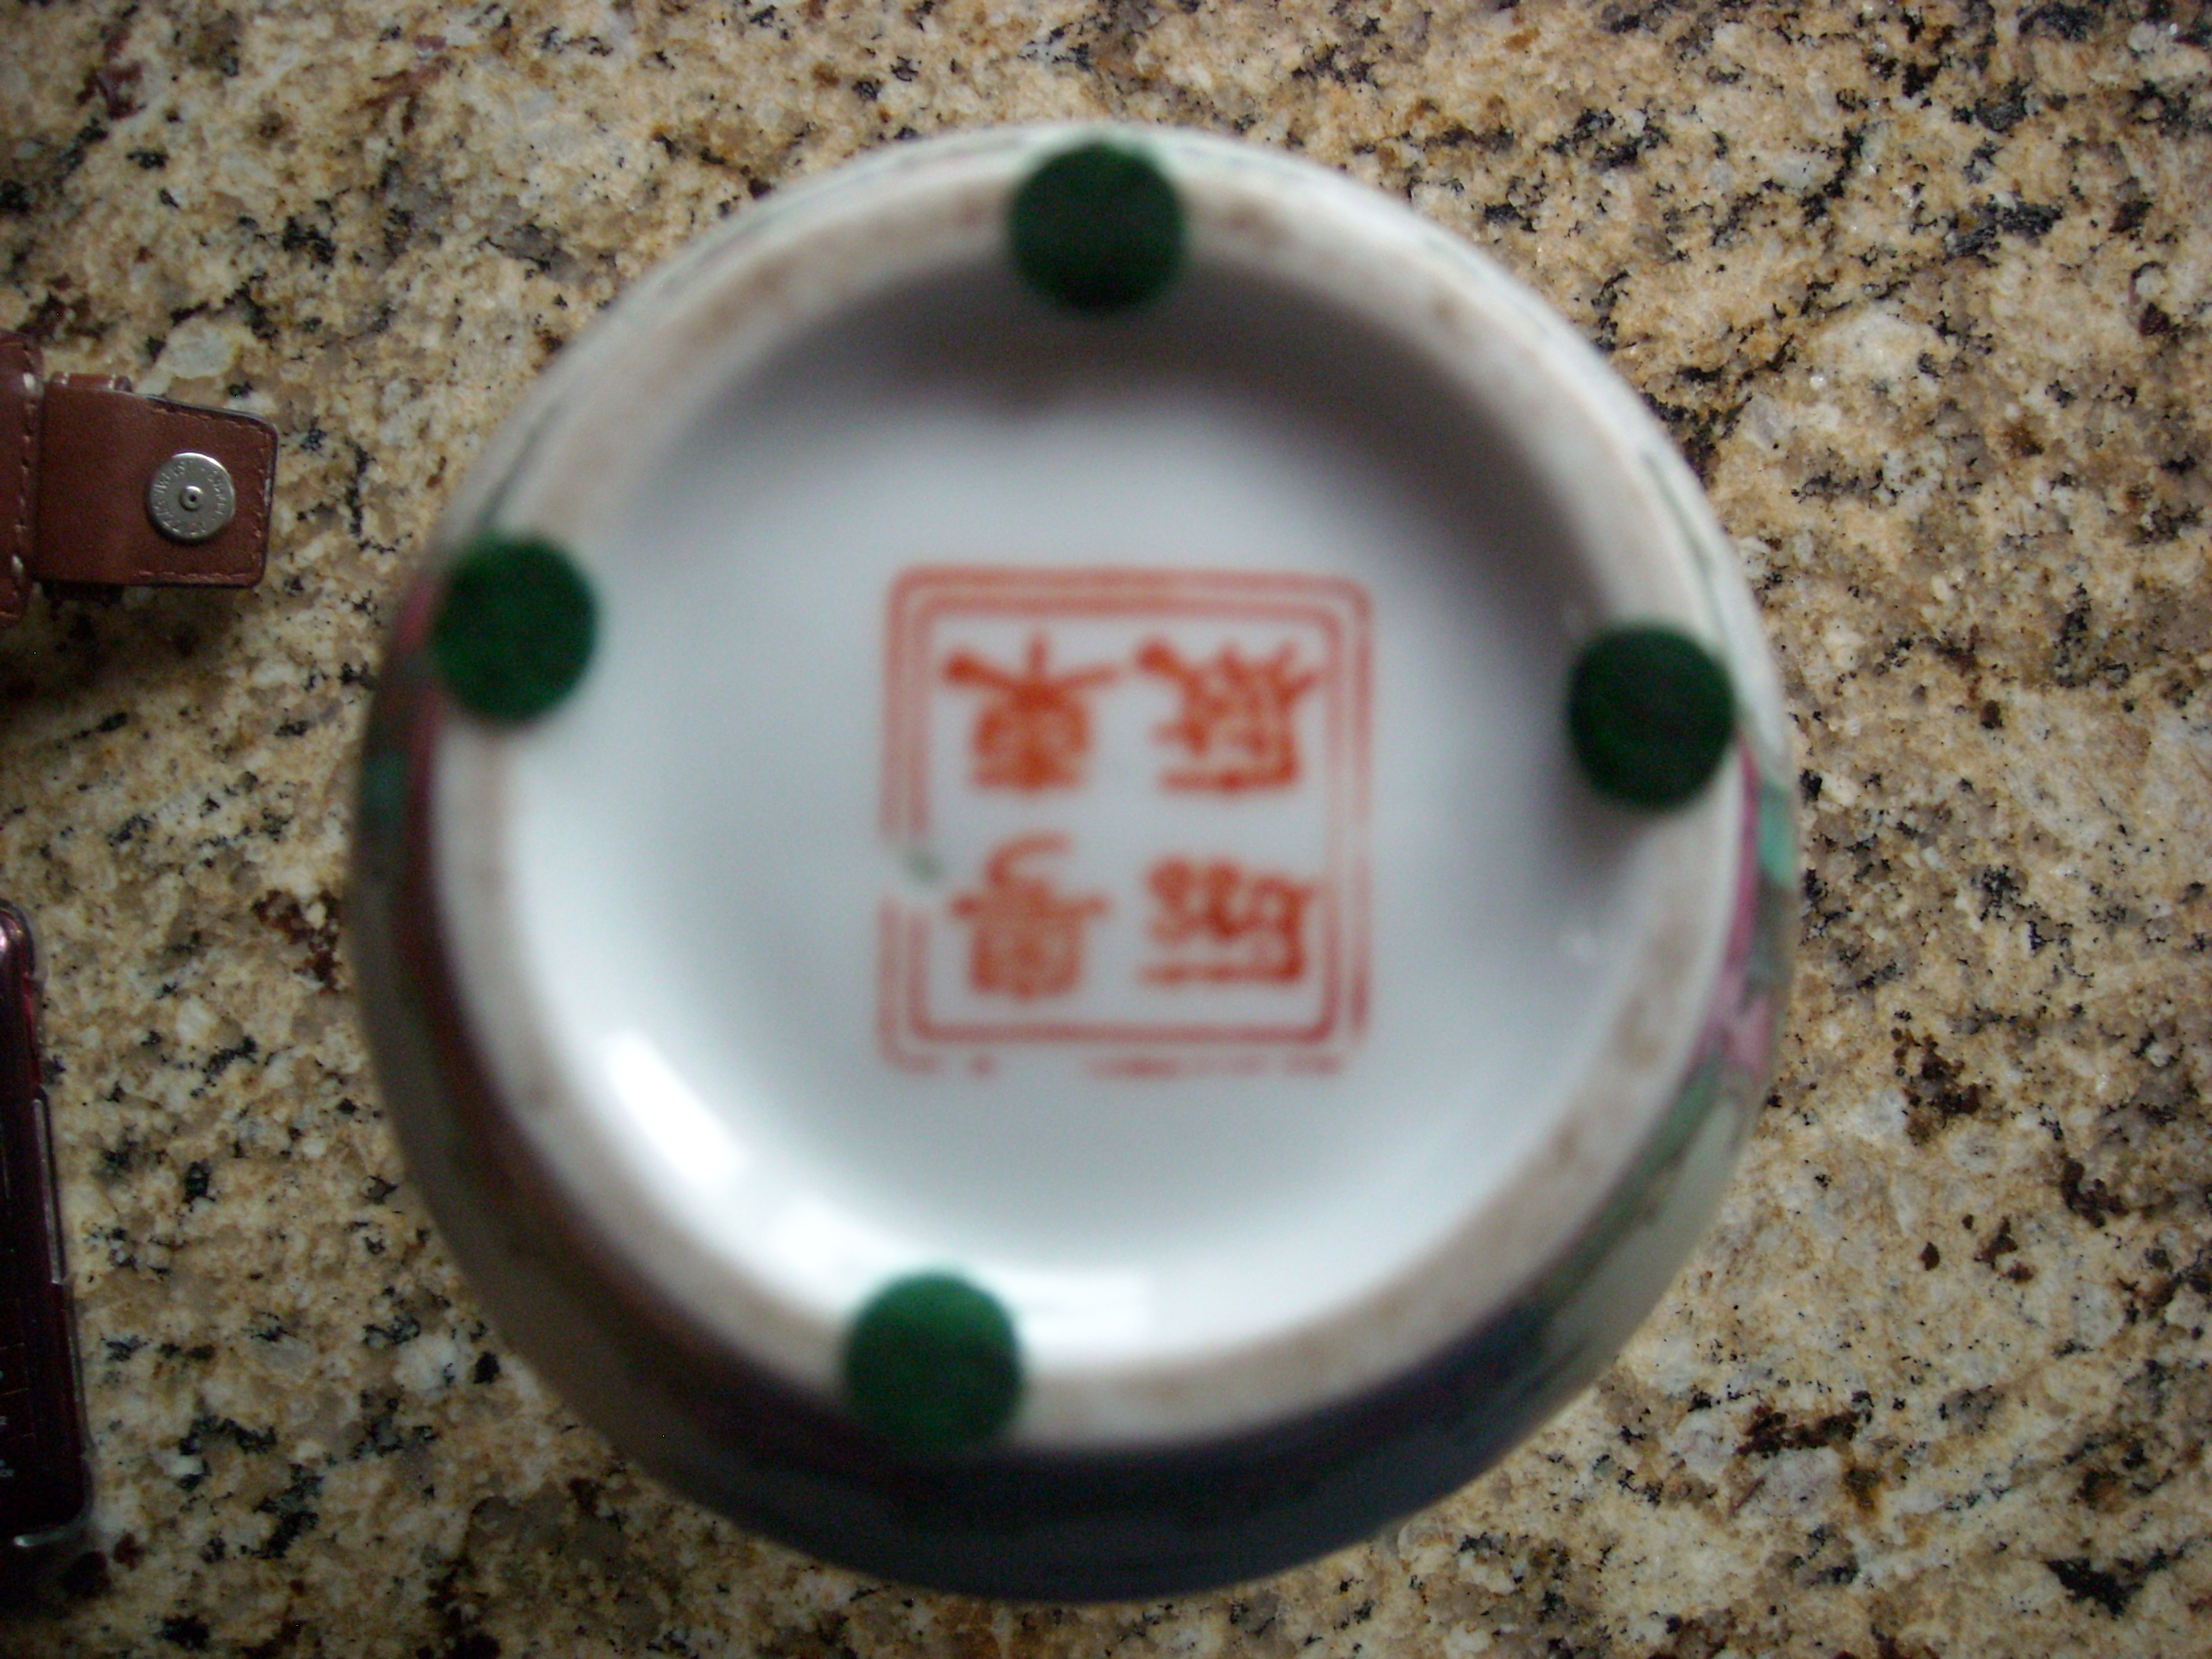 We have an antique japanese vase with what appears to be a graphic graphic reviewsmspy